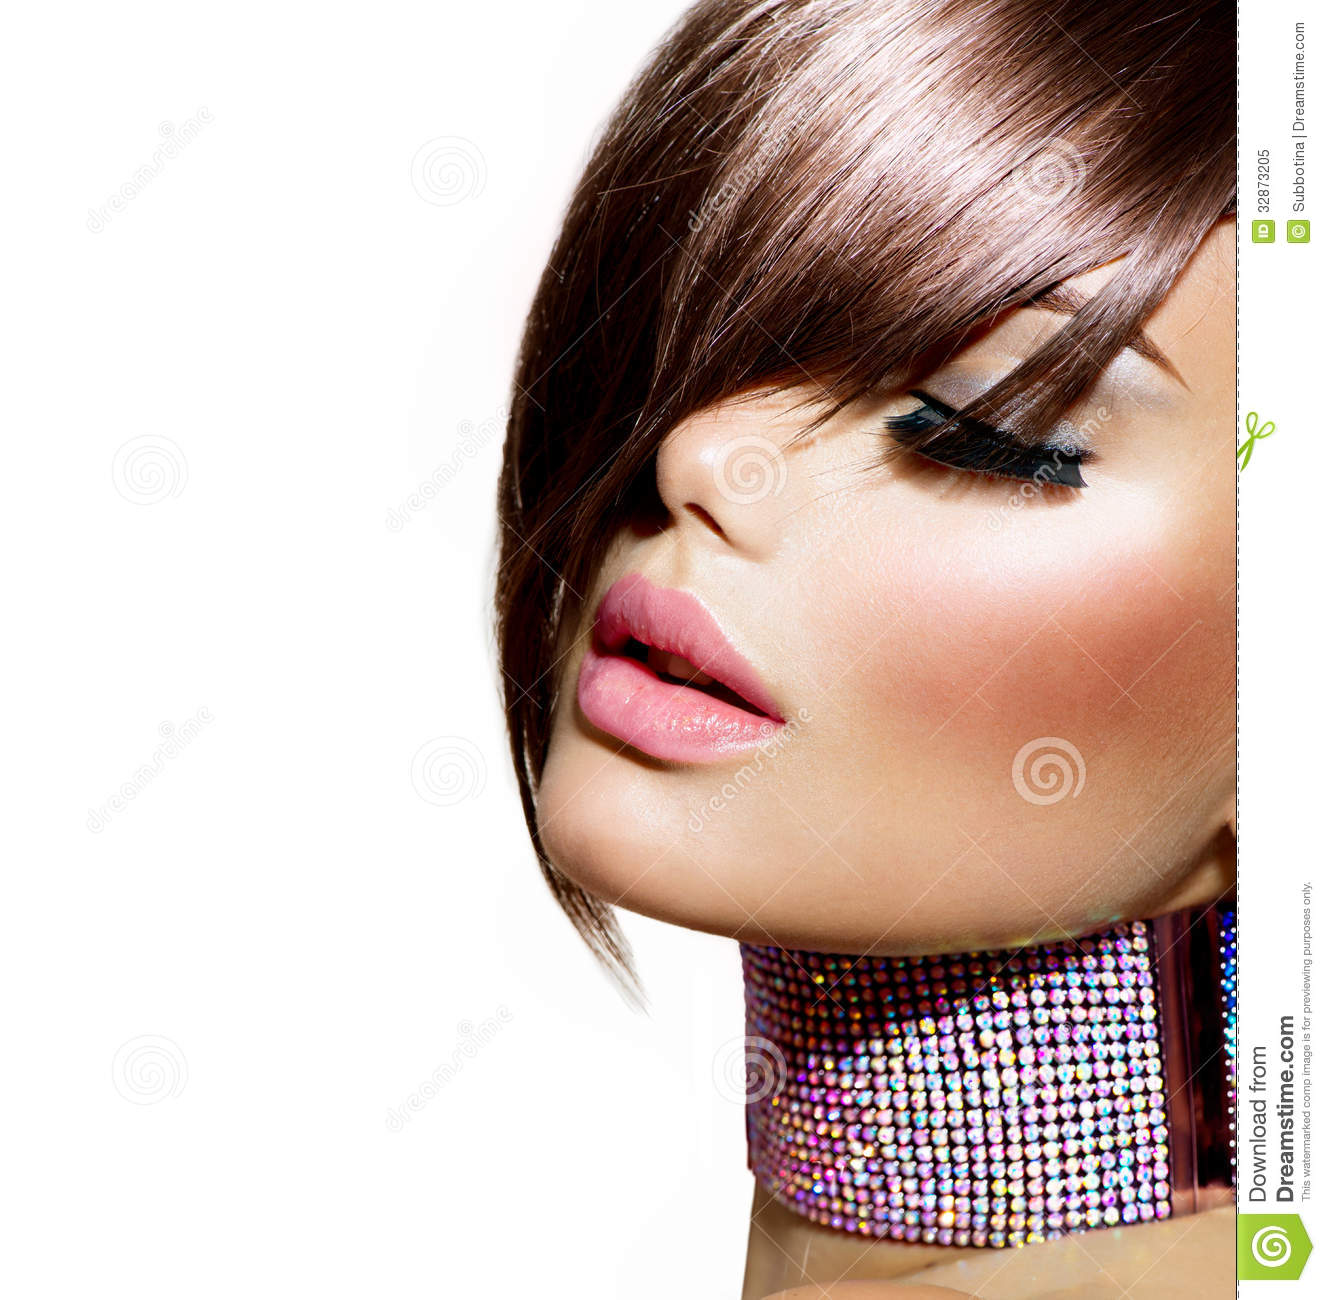 Girl Hairstyle Download Video: Hairstyle. Beauty Model Girl Stock Image